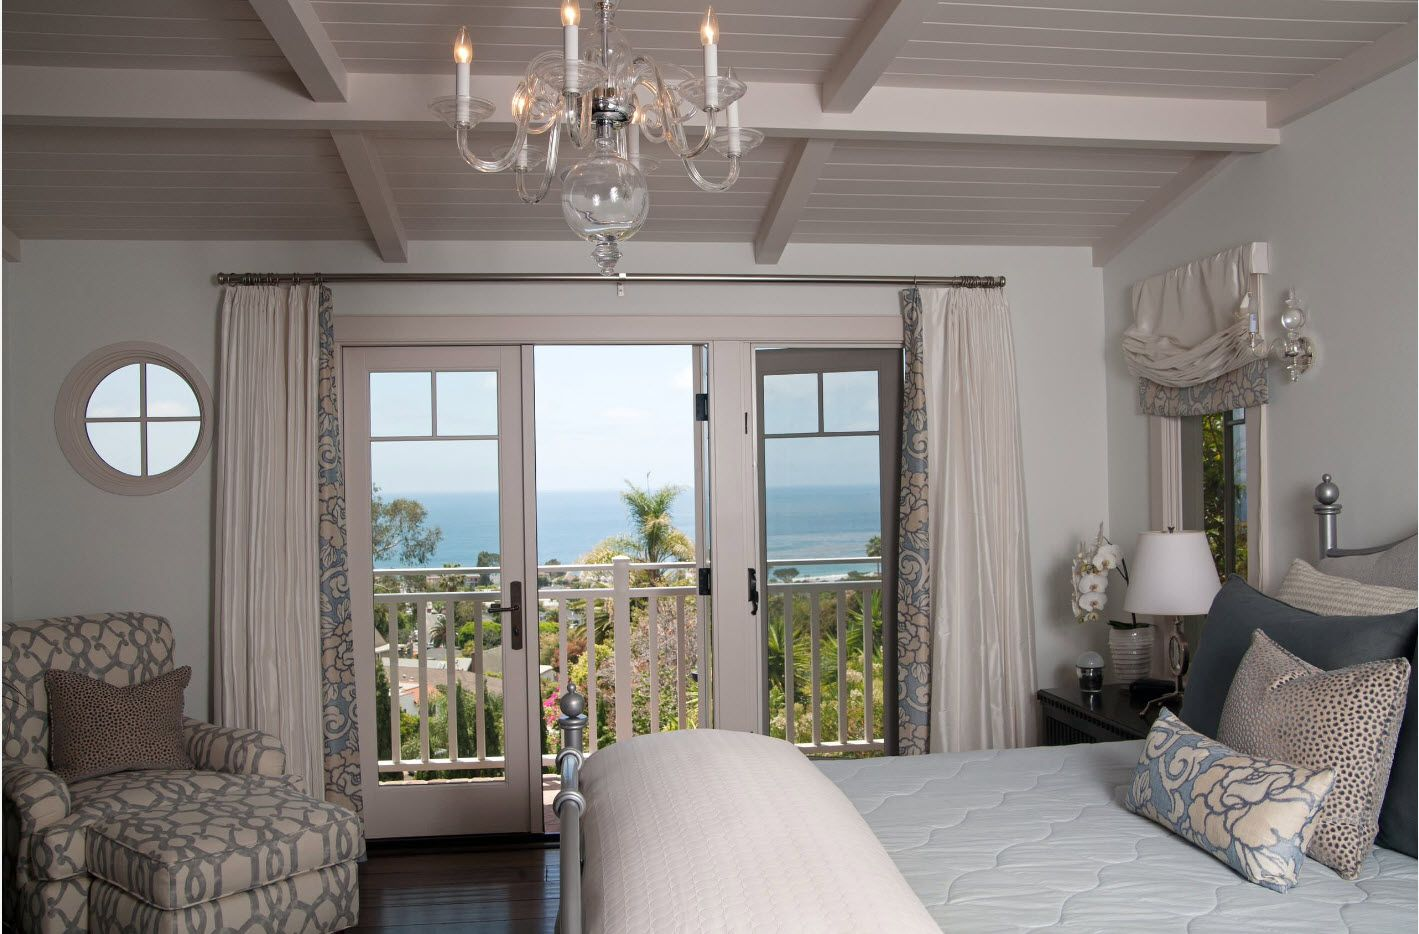 Bedroom Drapes 2017. Design, Forms, Real Examples with Photos. Nice classic set of the room with look to the ocean